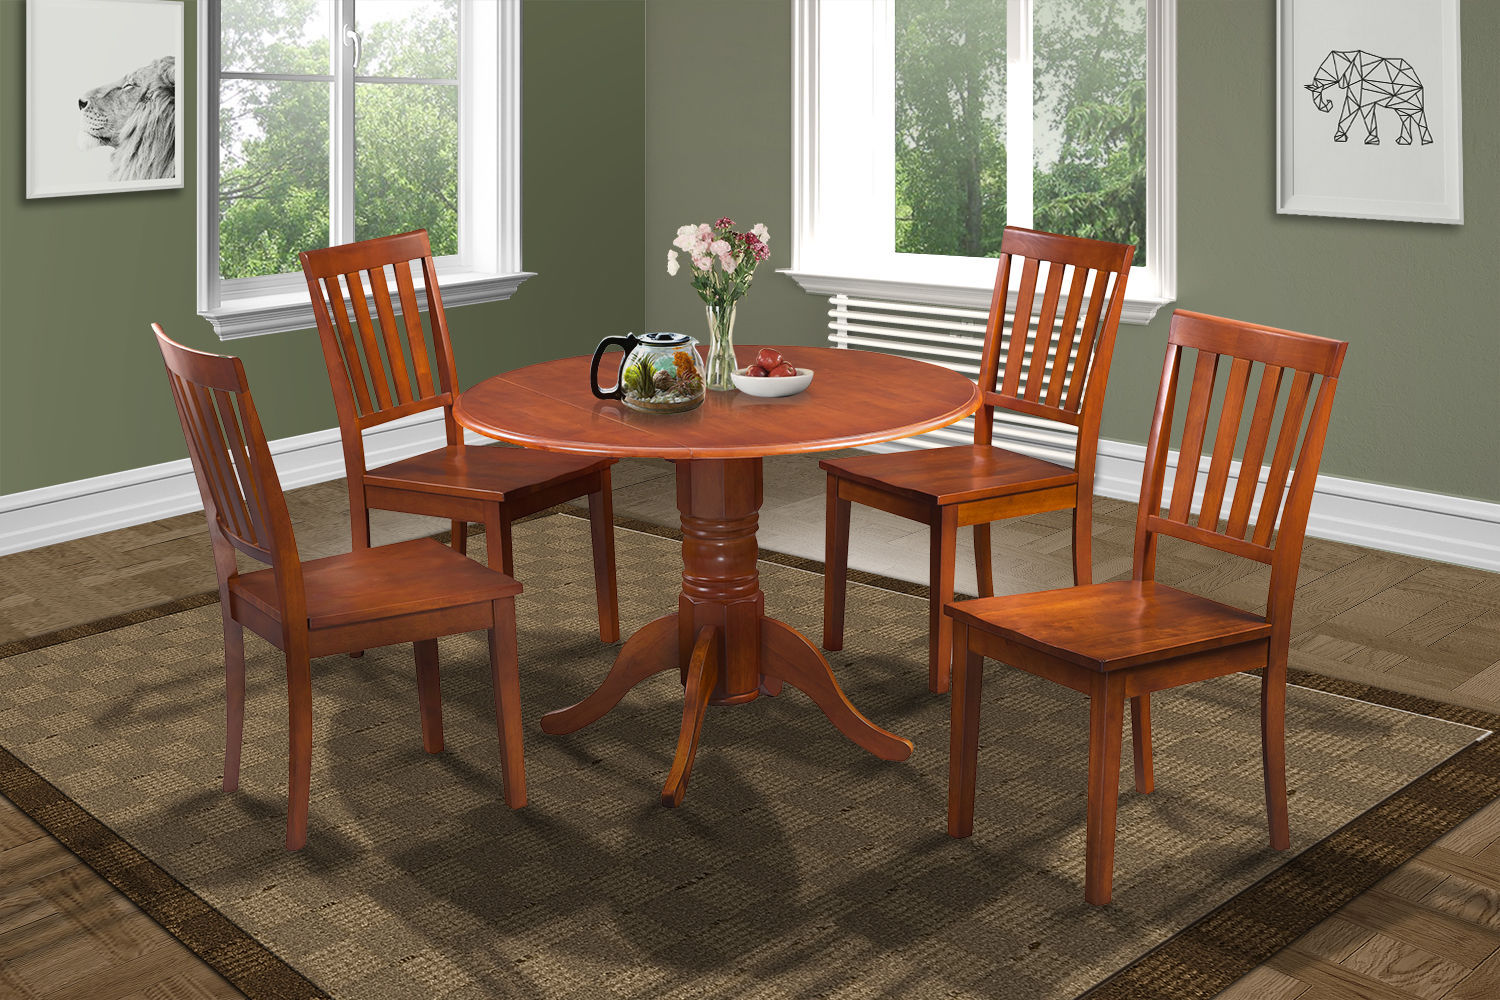 SET OF 6 MOCHA KITCHEN DINING CHAIRS WITH WOODEN SEAT IN SADDLE BROWN